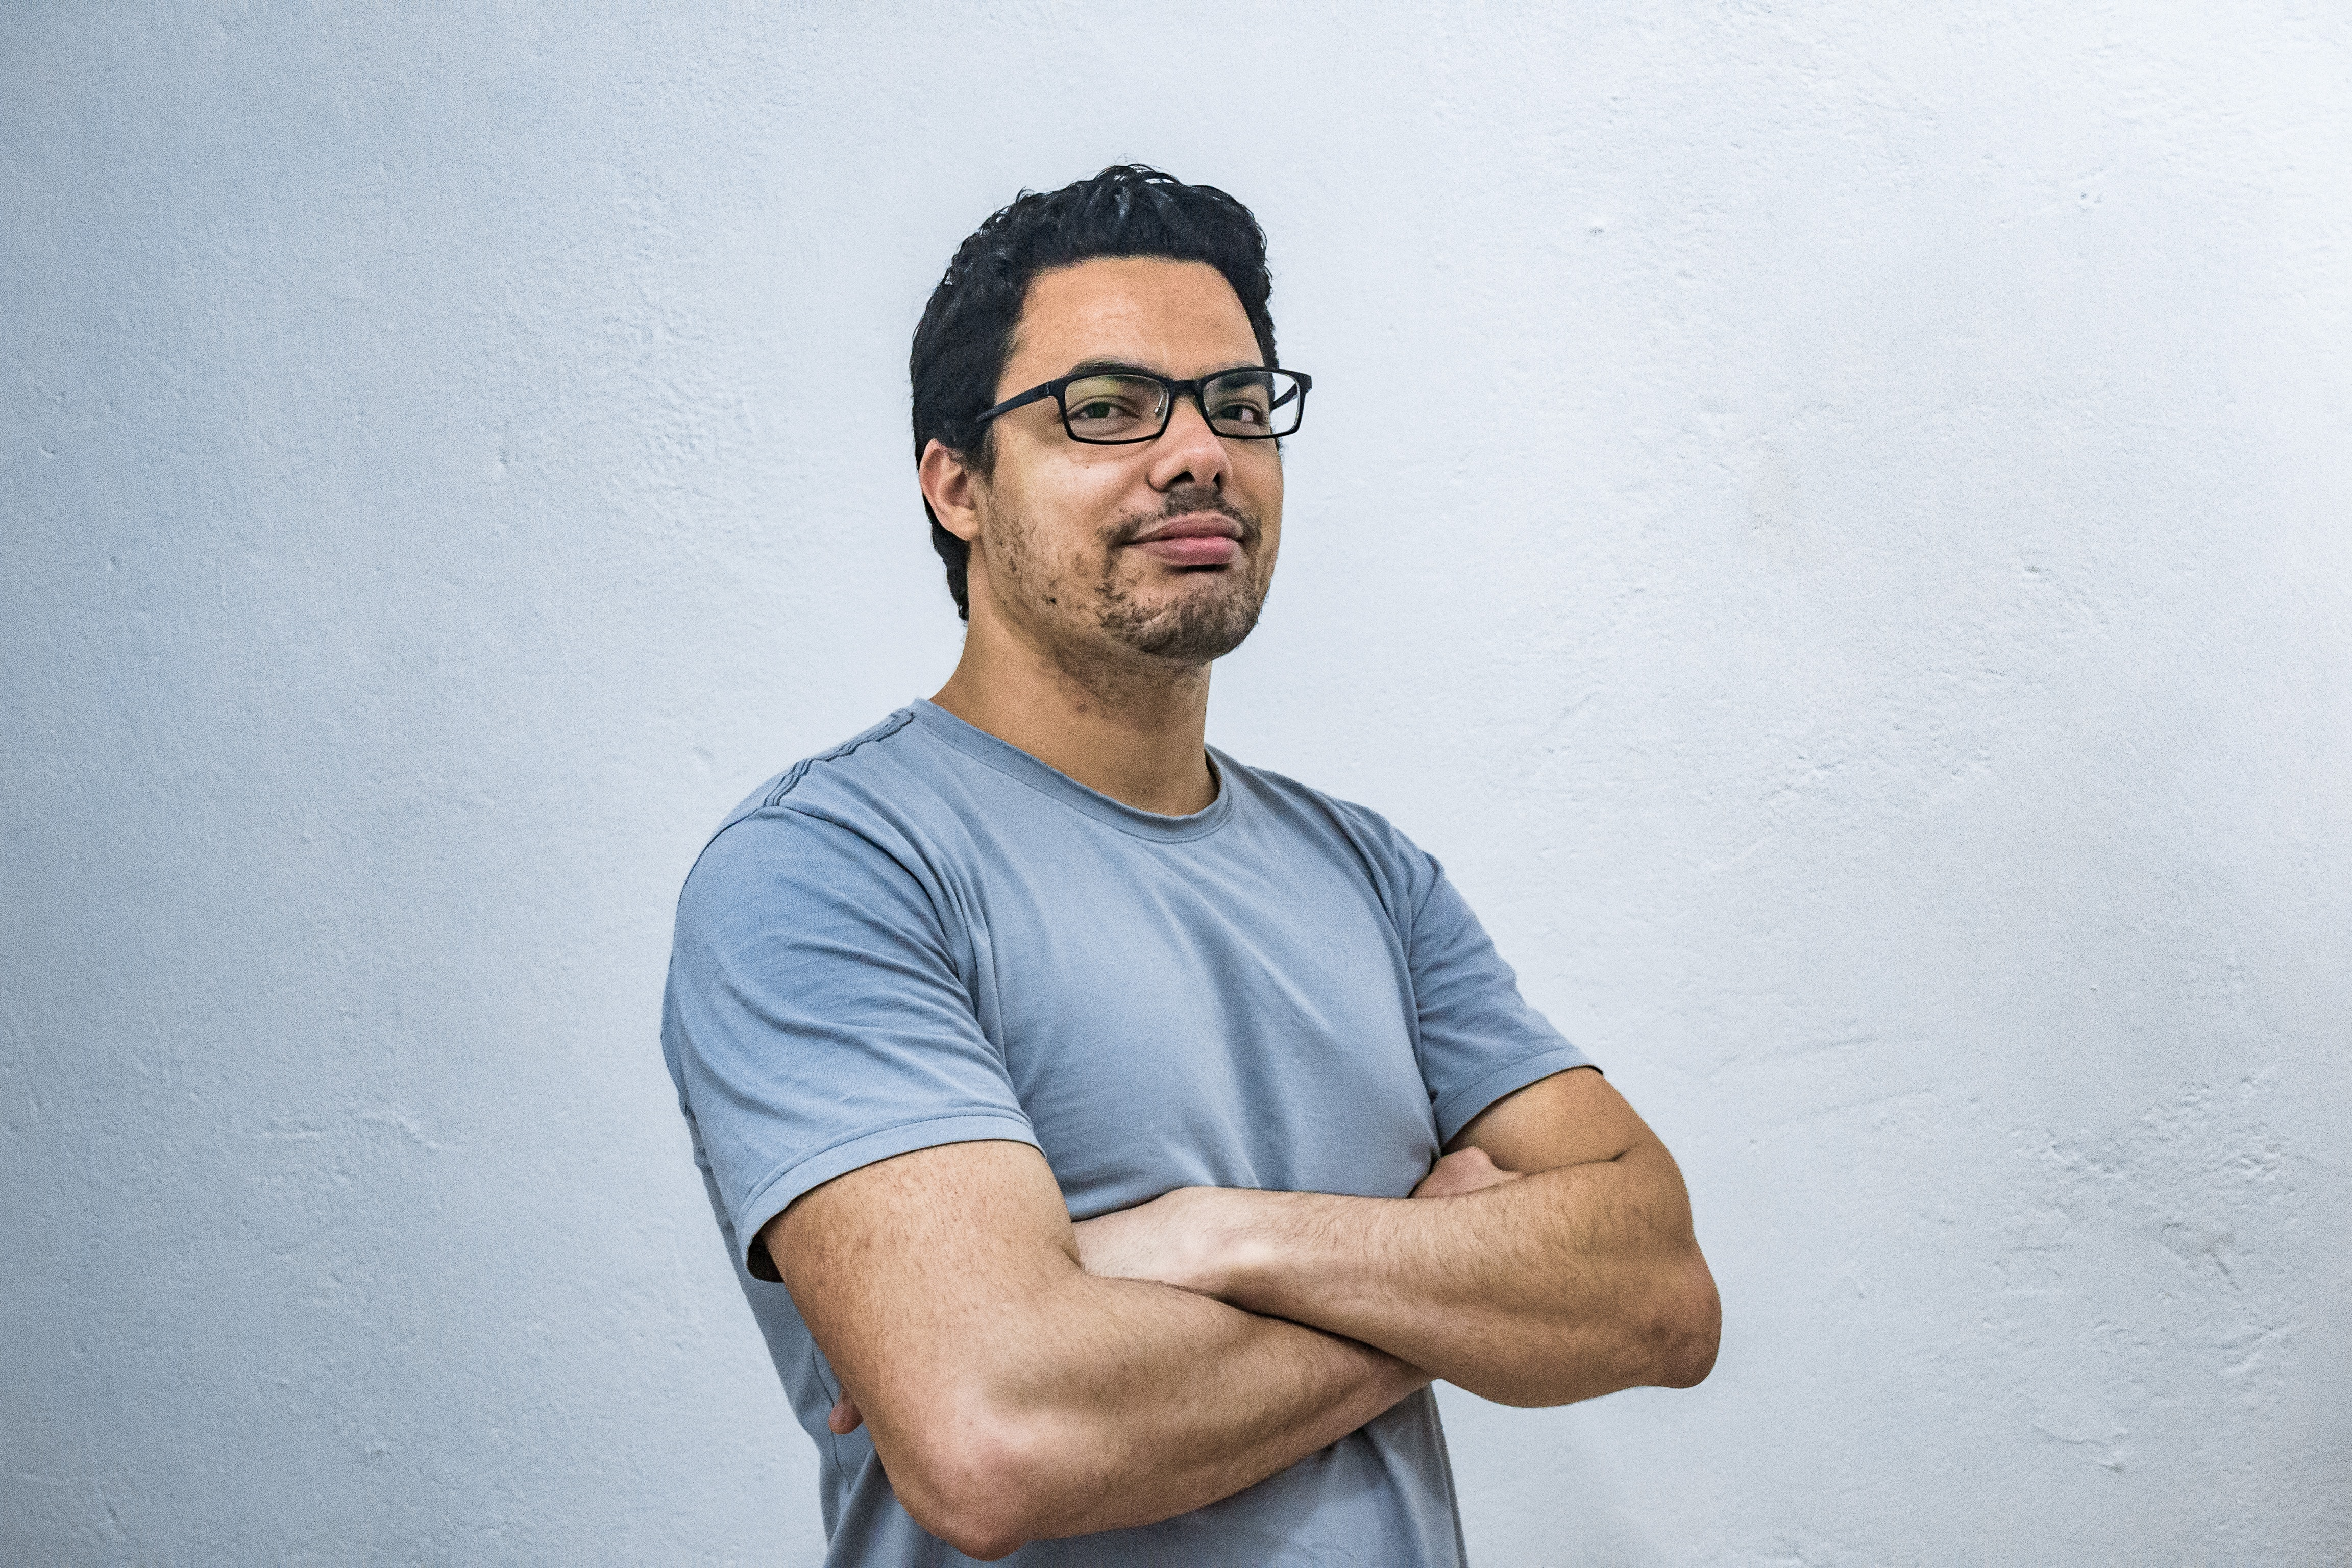 man posing in front of camera